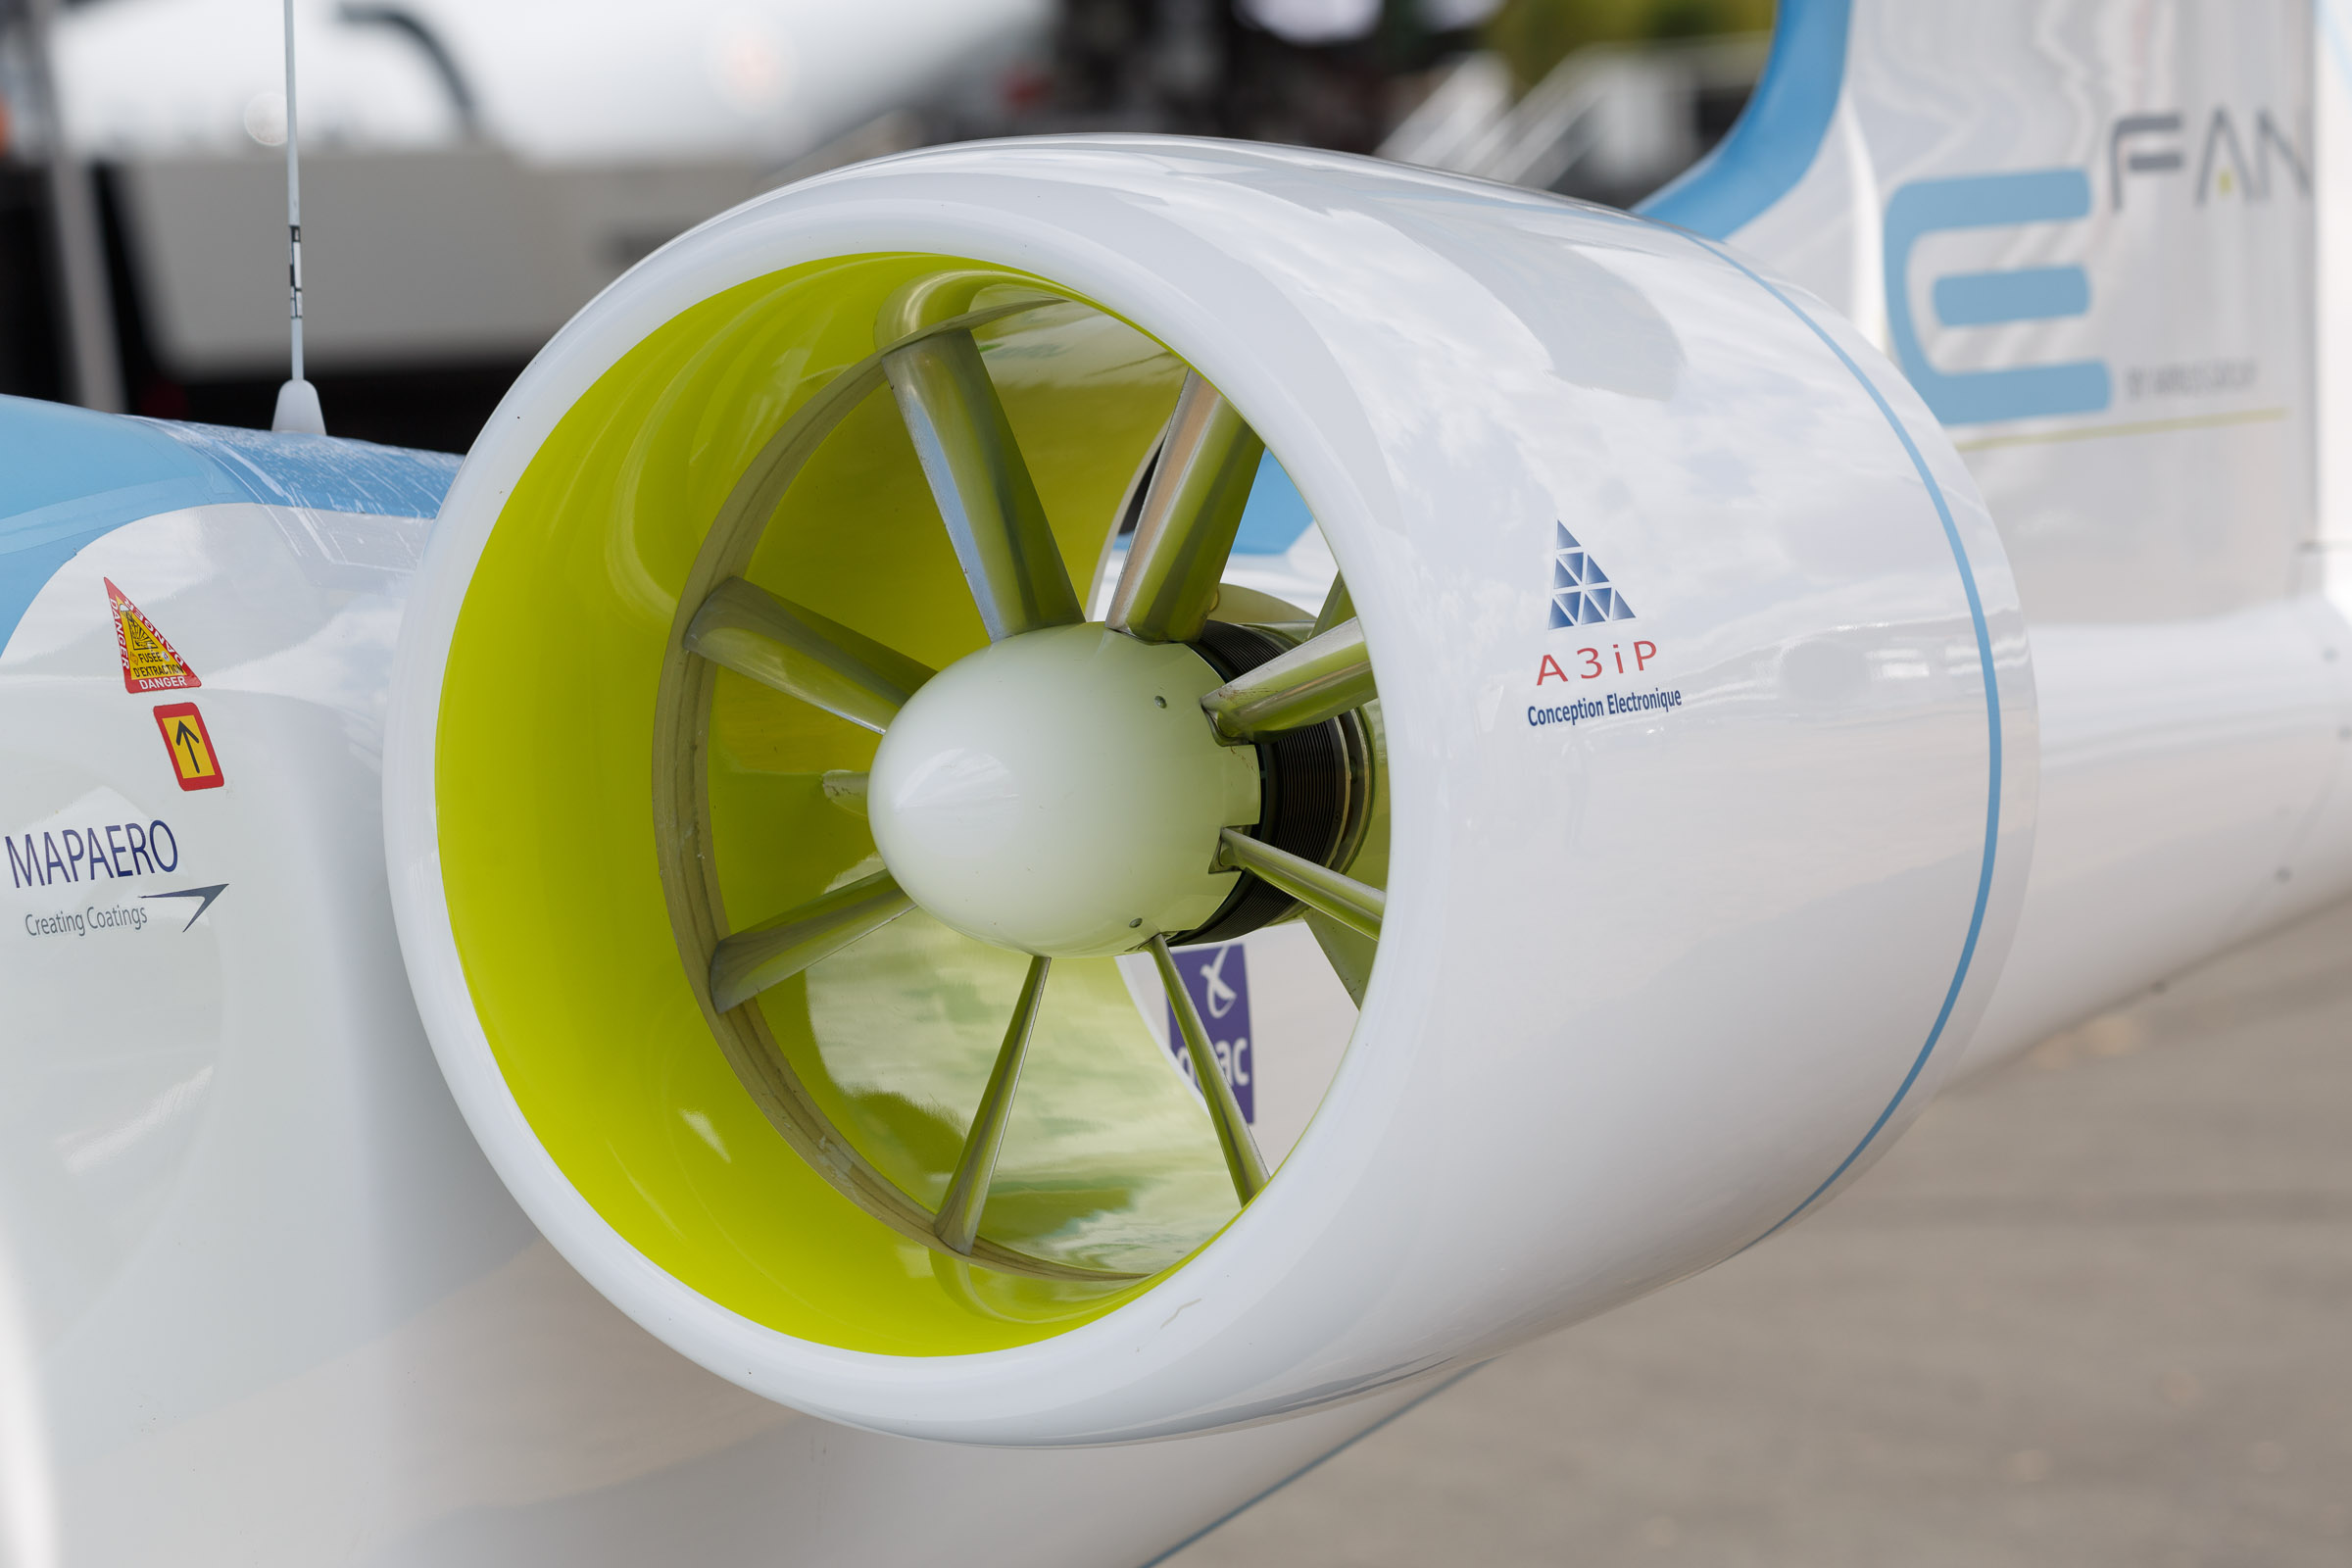 The Airbus E-Fan's twin engines are powered by a 120-cell lithium polymer battery.